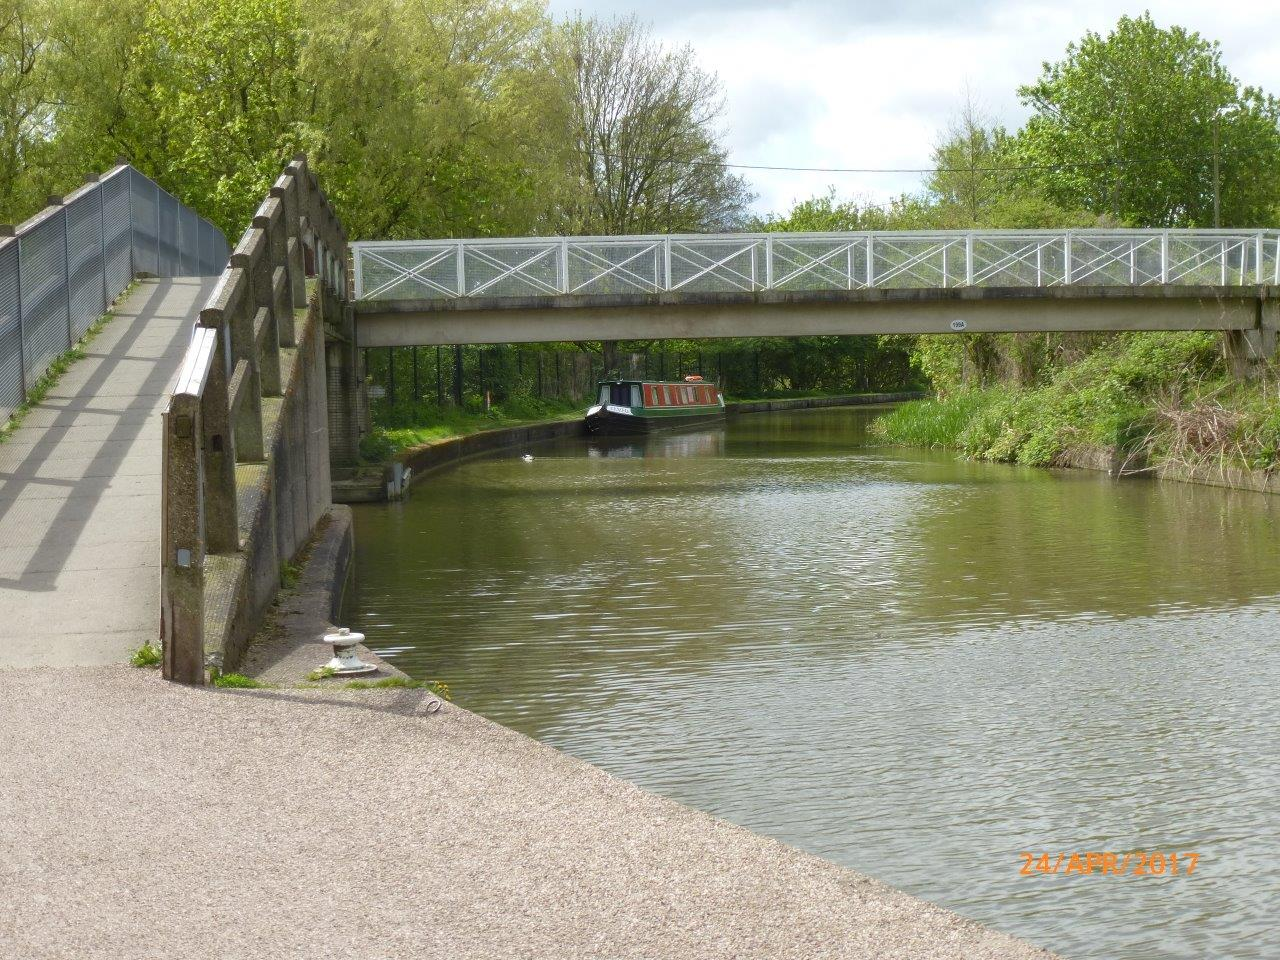 Anderton visitor mooring Trent and Mersey